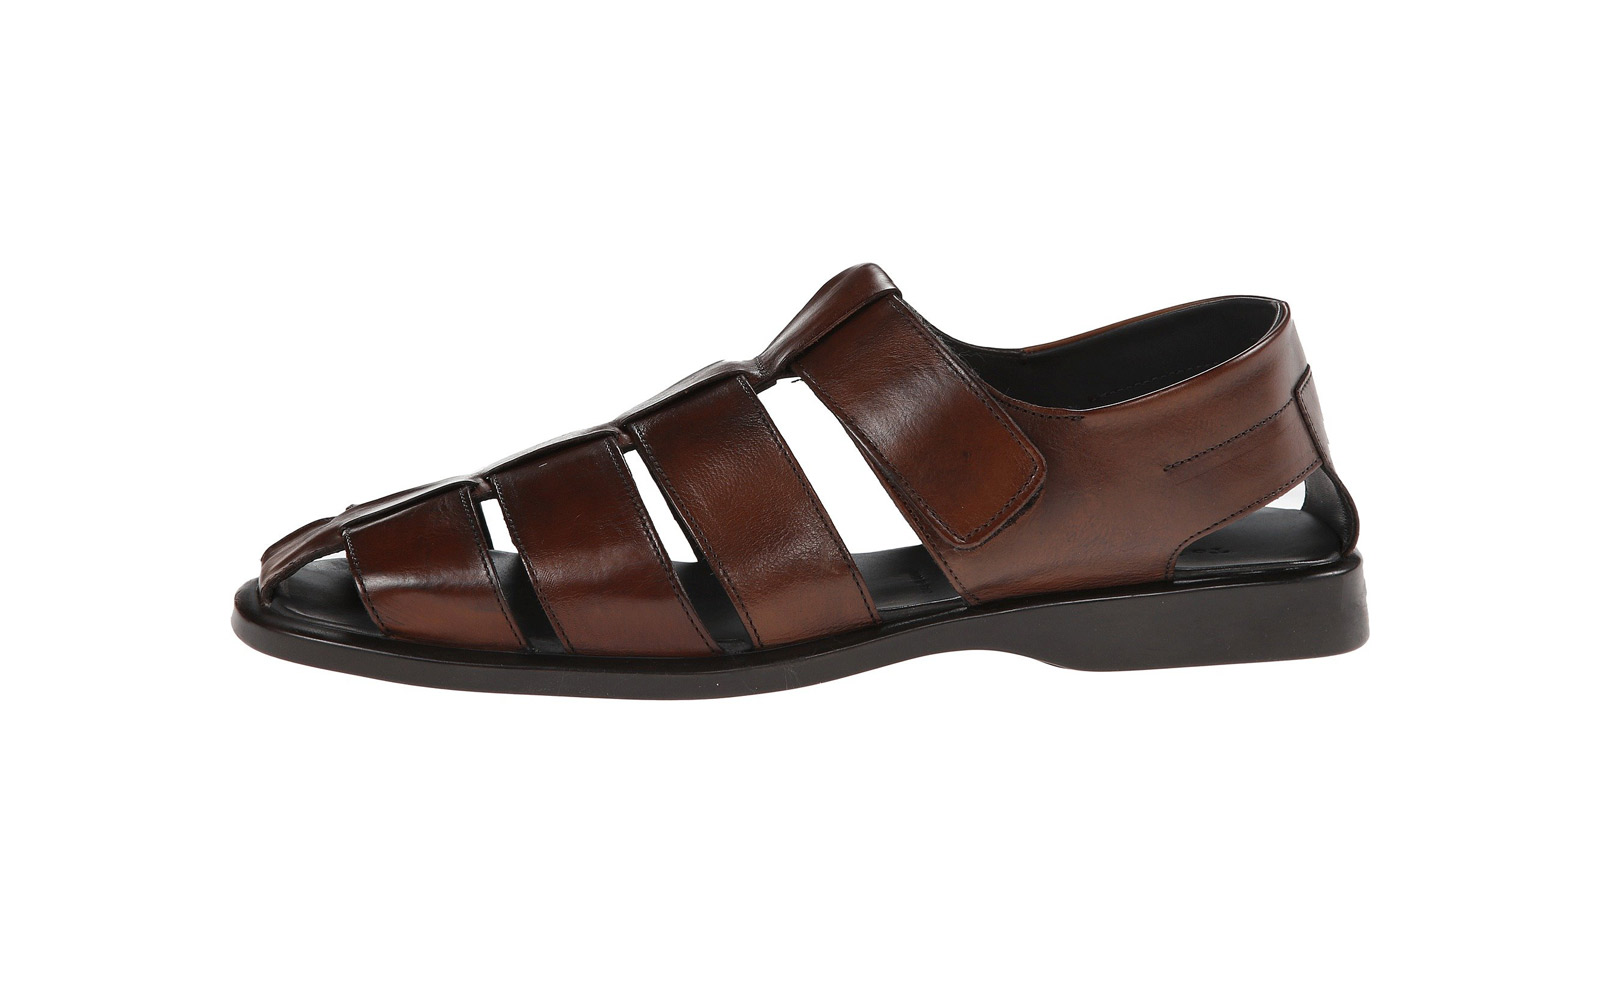 Best Men's Closed-toe Sandals: To Boot